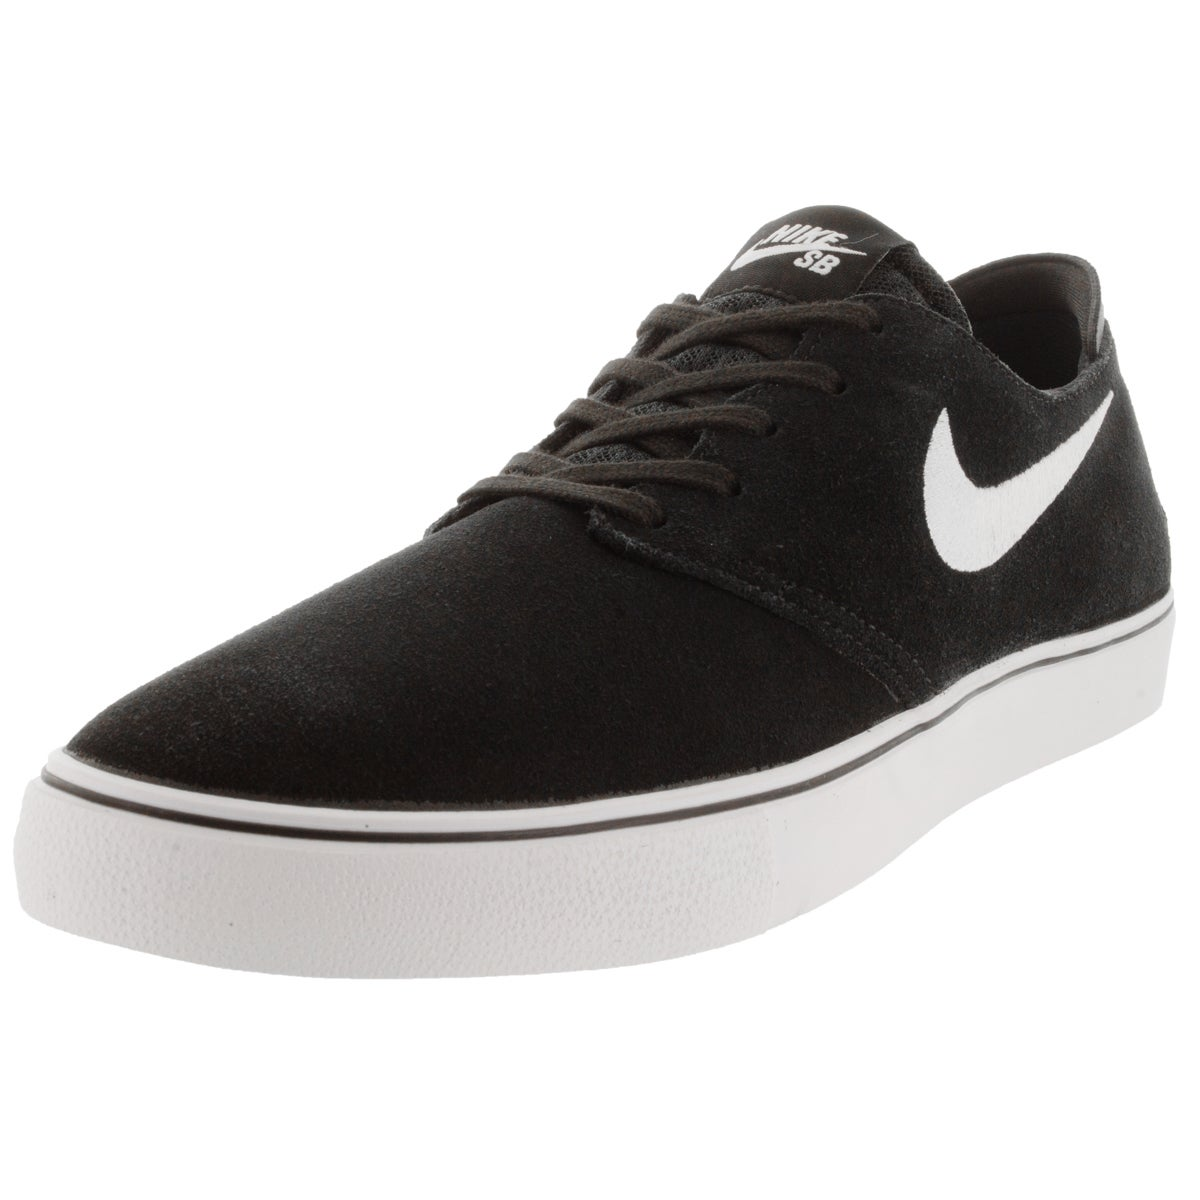 super popular c4c35 e9adf Nike-Mens-Zoom-Oneshot-Sb-Black-White -Gum-Light-Brown-Skate-Shoe-54ffe8c3-b274-4d87-b2e8-a4bc47d913c1.jpg